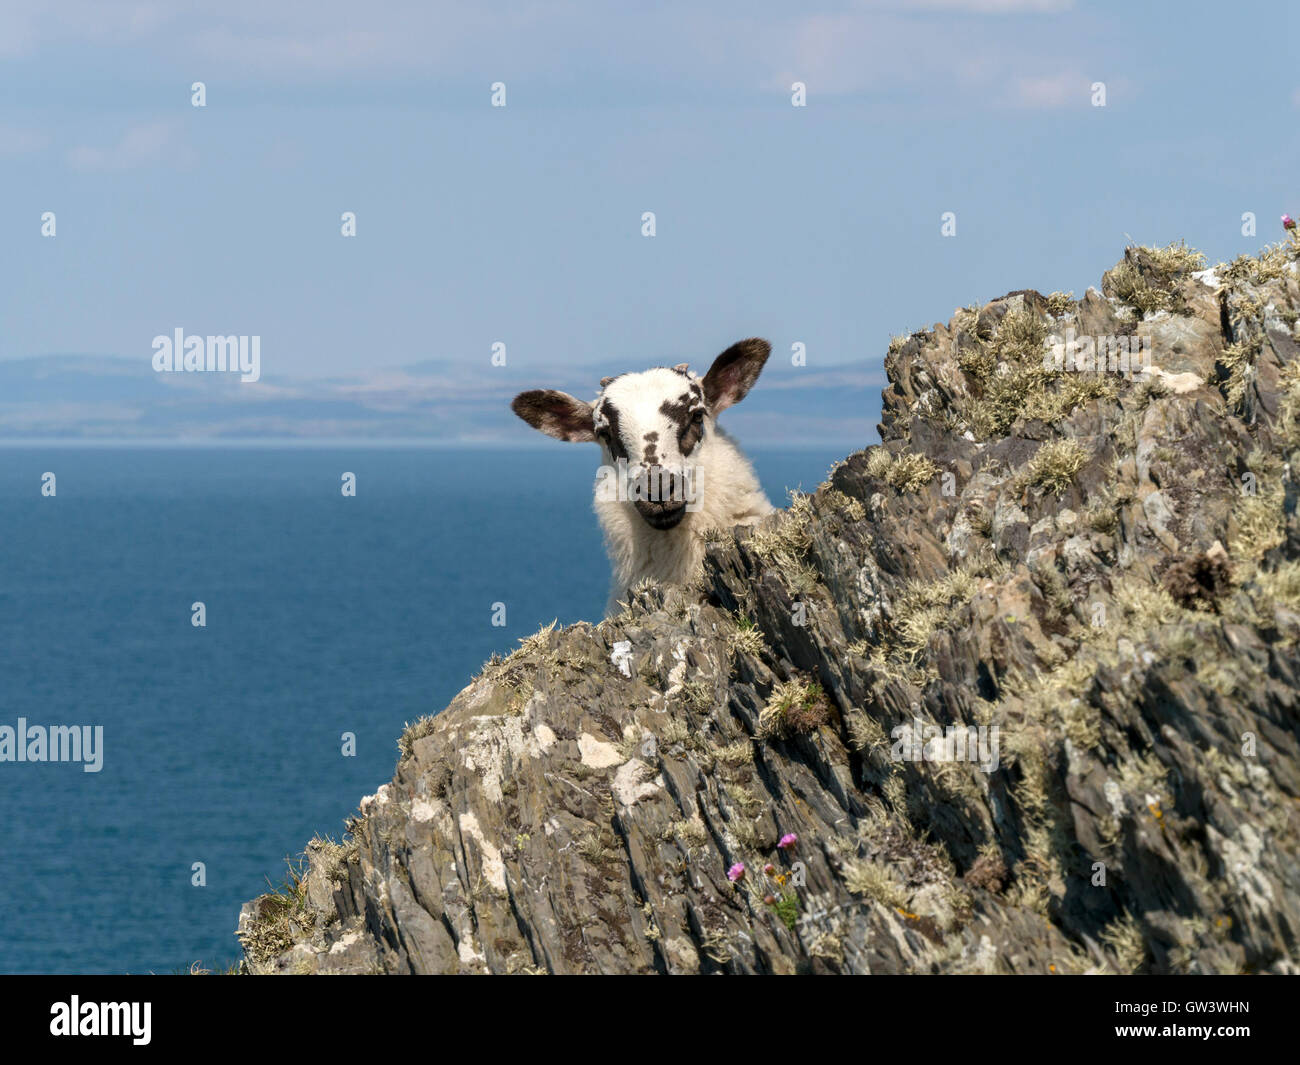 young-lamb-with-big-ears-peeping-around-